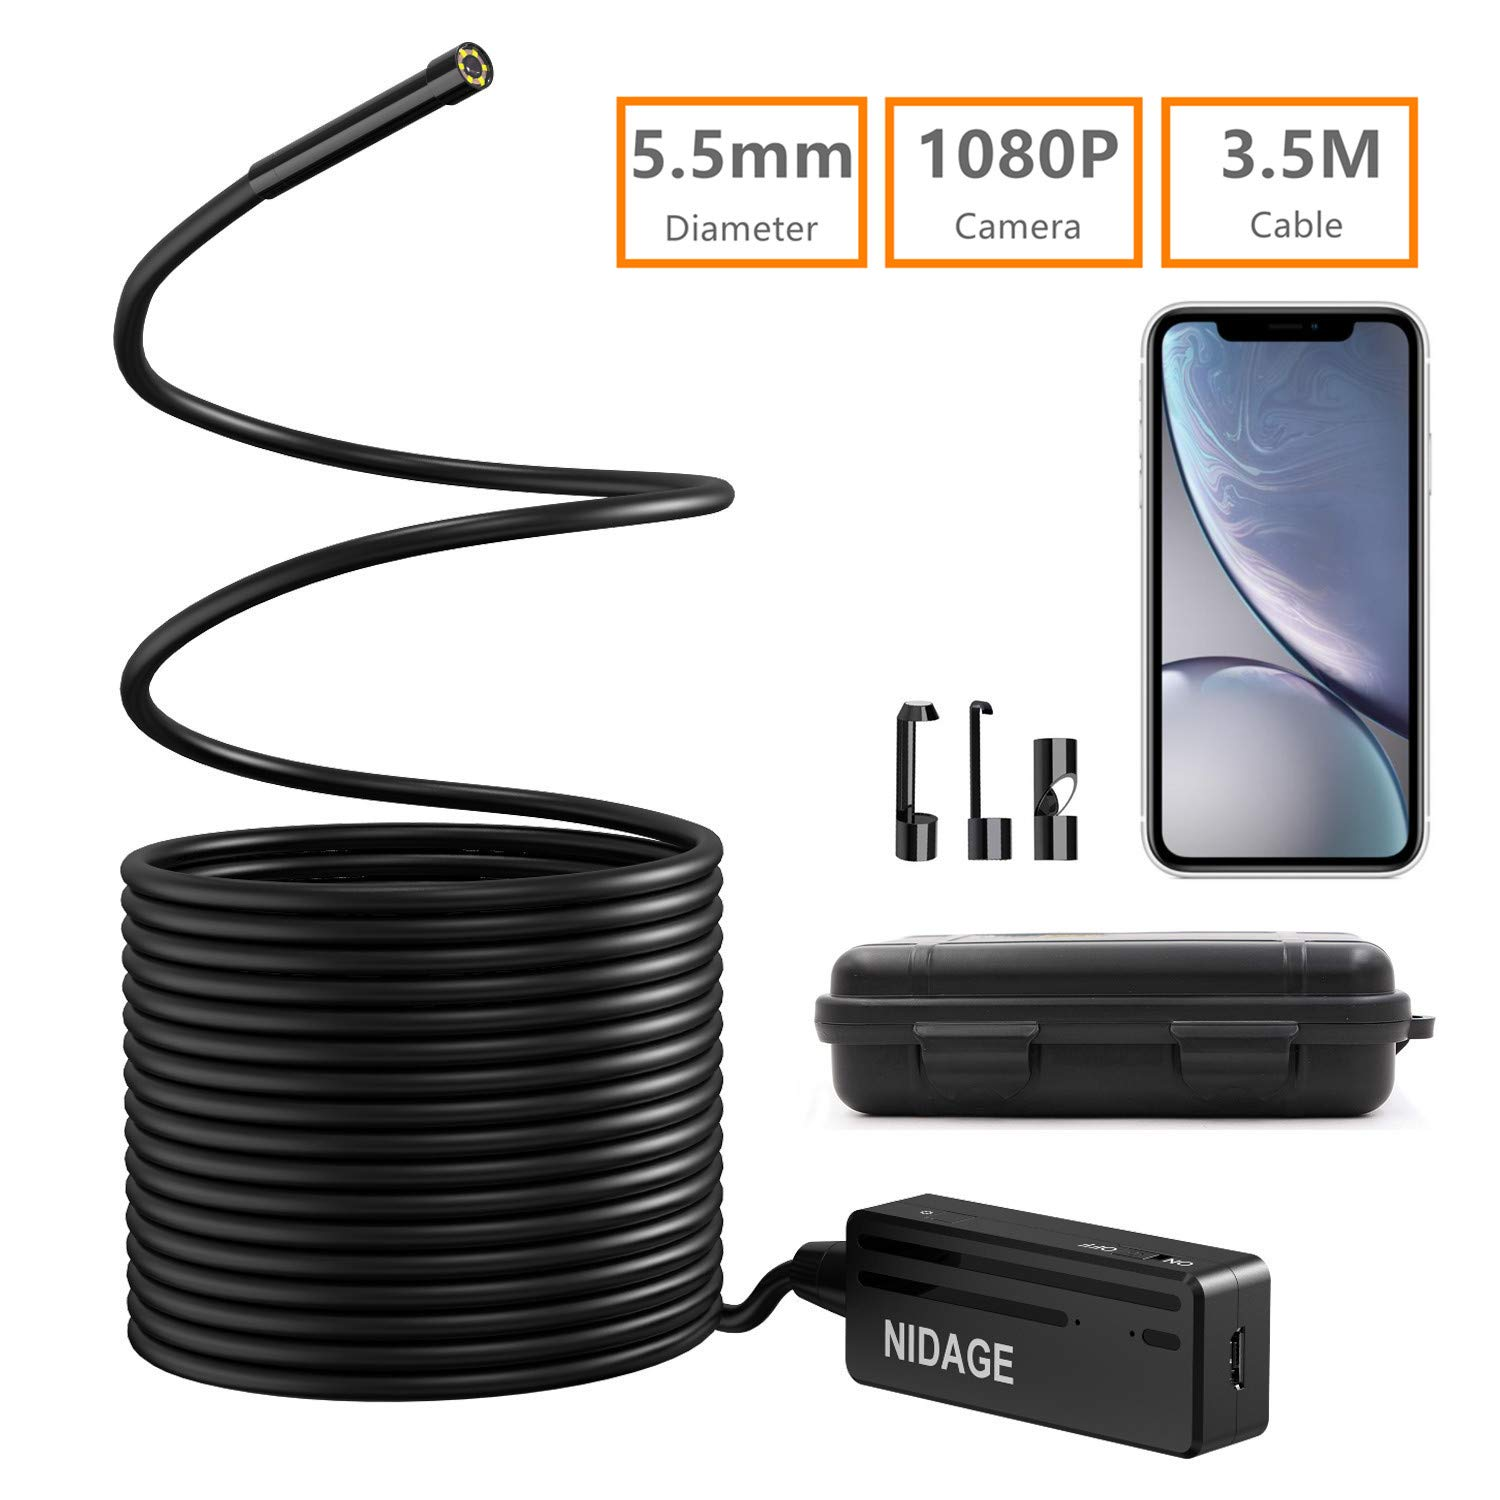 Wireless Endoscope, NIDAGE 5.5mm 2MP WiFi Borescope 1080P HD Semi-Rigid Snake Camera for iPhone Android, Tablet, Motor Engine Sewer Pipe Vehicle Inspection Camera with Carry Box(11.5FT) by NIDAGE